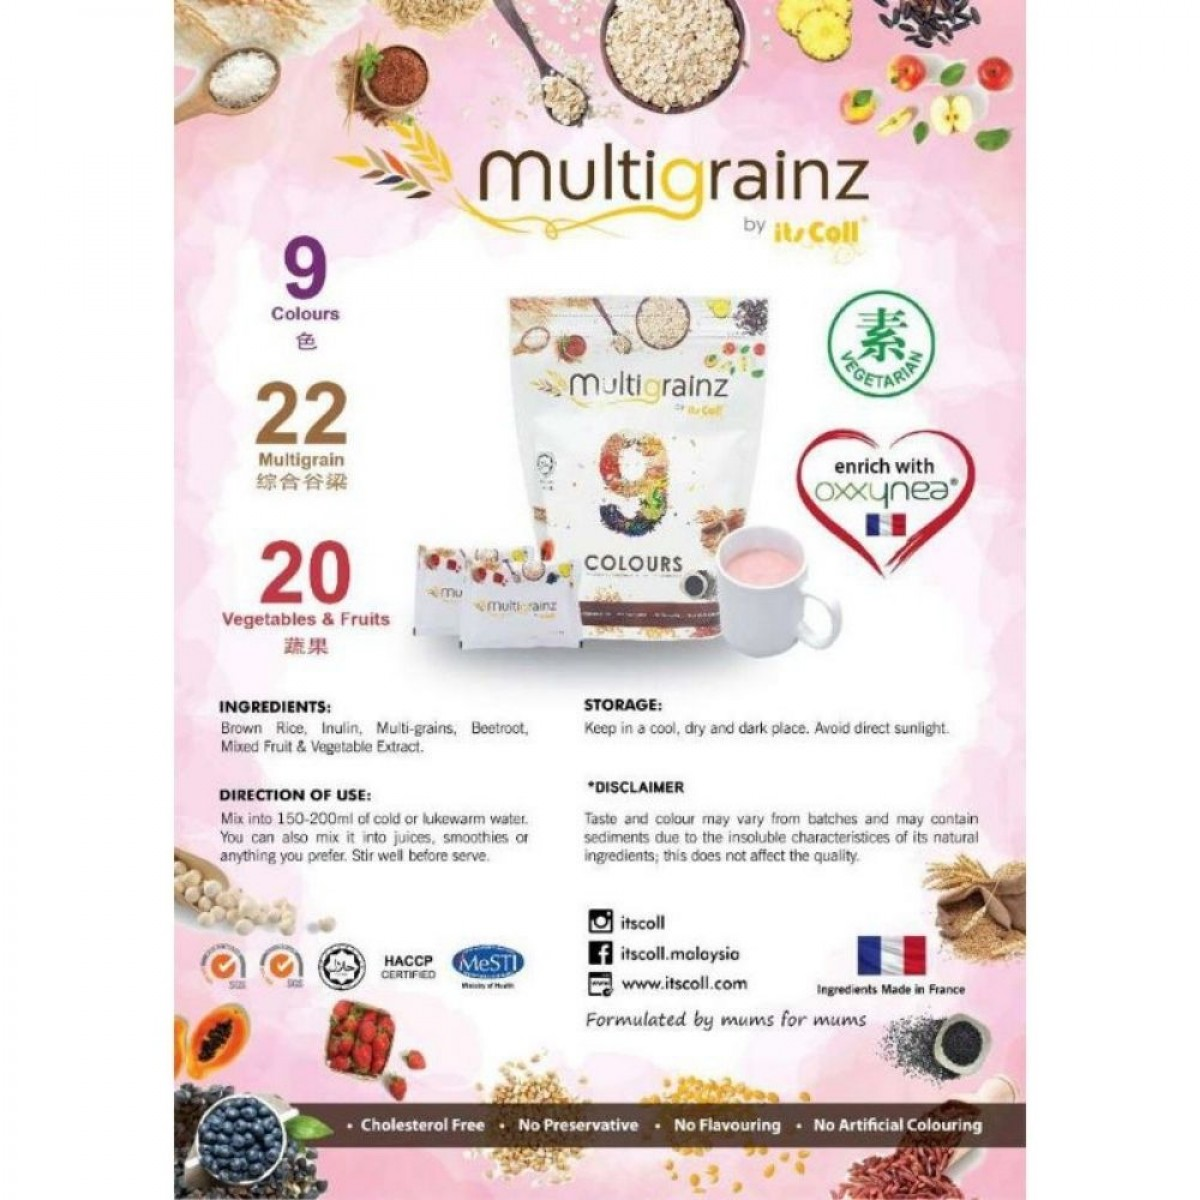 Its Coll Multigrainz 600g - Healthy Drink with Complete Nutrition 完美谷粮 - 健康代餐